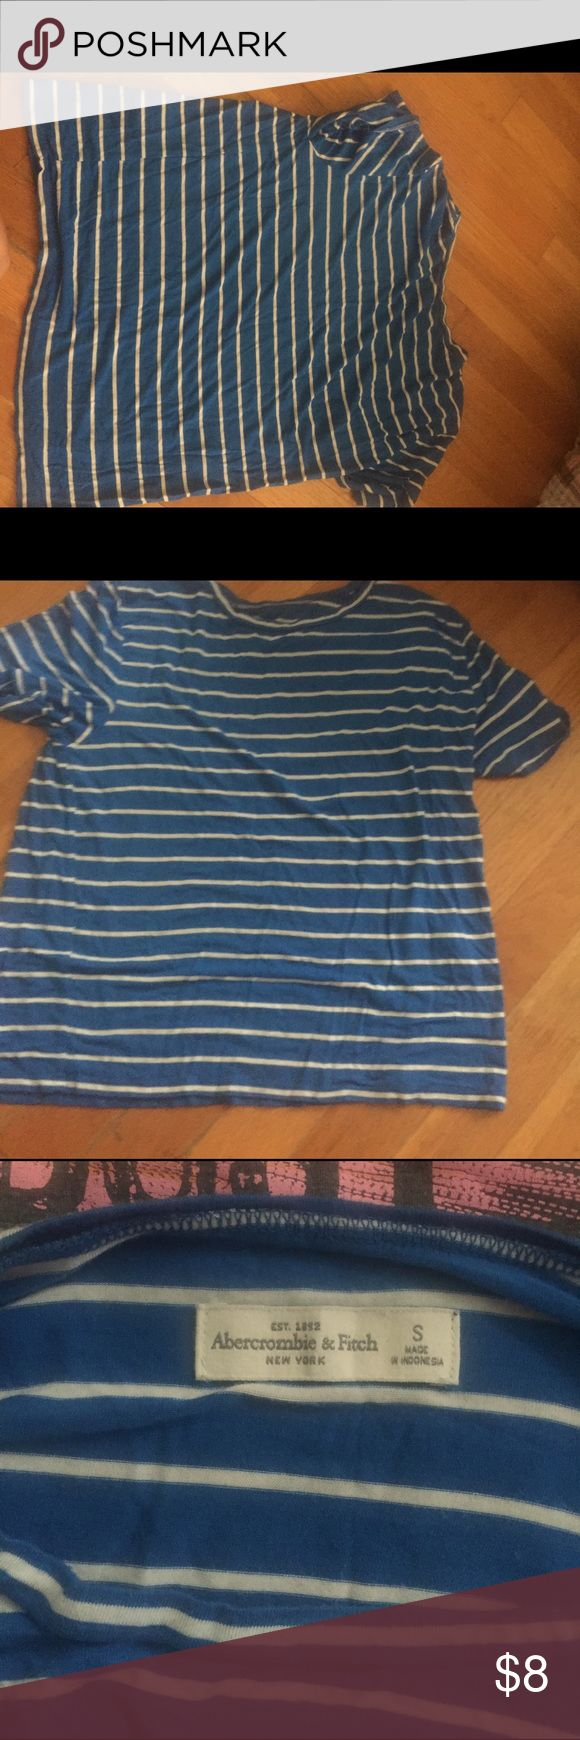 abercrombie and fitch size small blue tshirt striped EUC make me an offer Abercrombie & Fitch Tops Tees - Short Sleeve